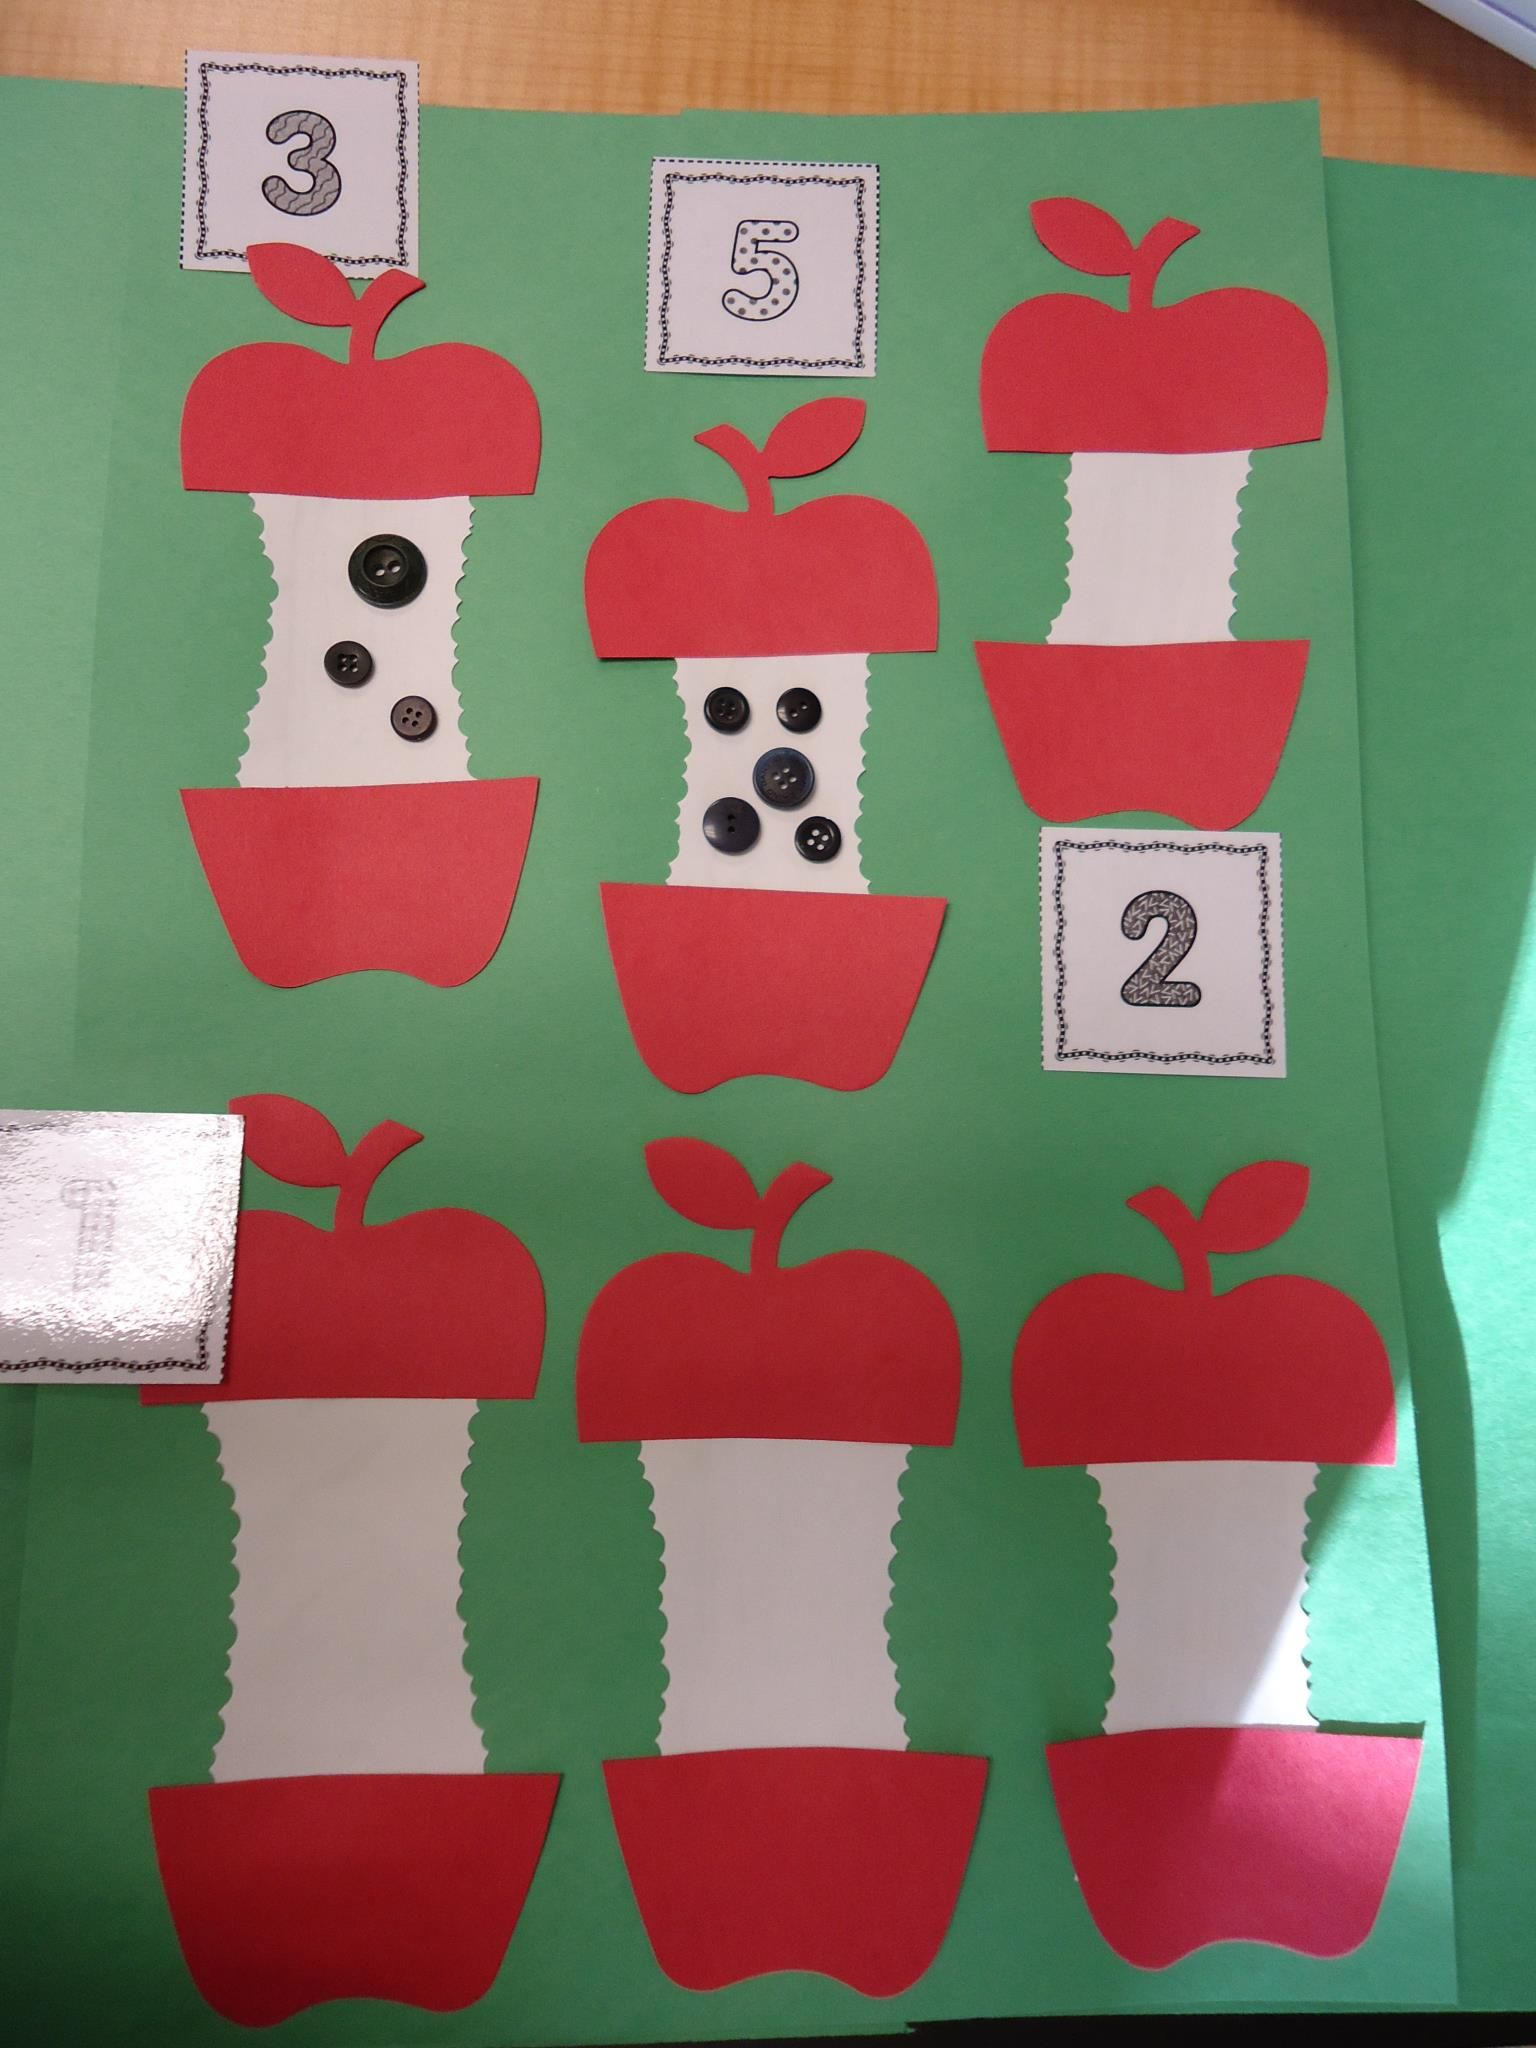 My Version Of The Apple Seed Counting Activity I Cut An Apple Shape With Our Ellison Machine